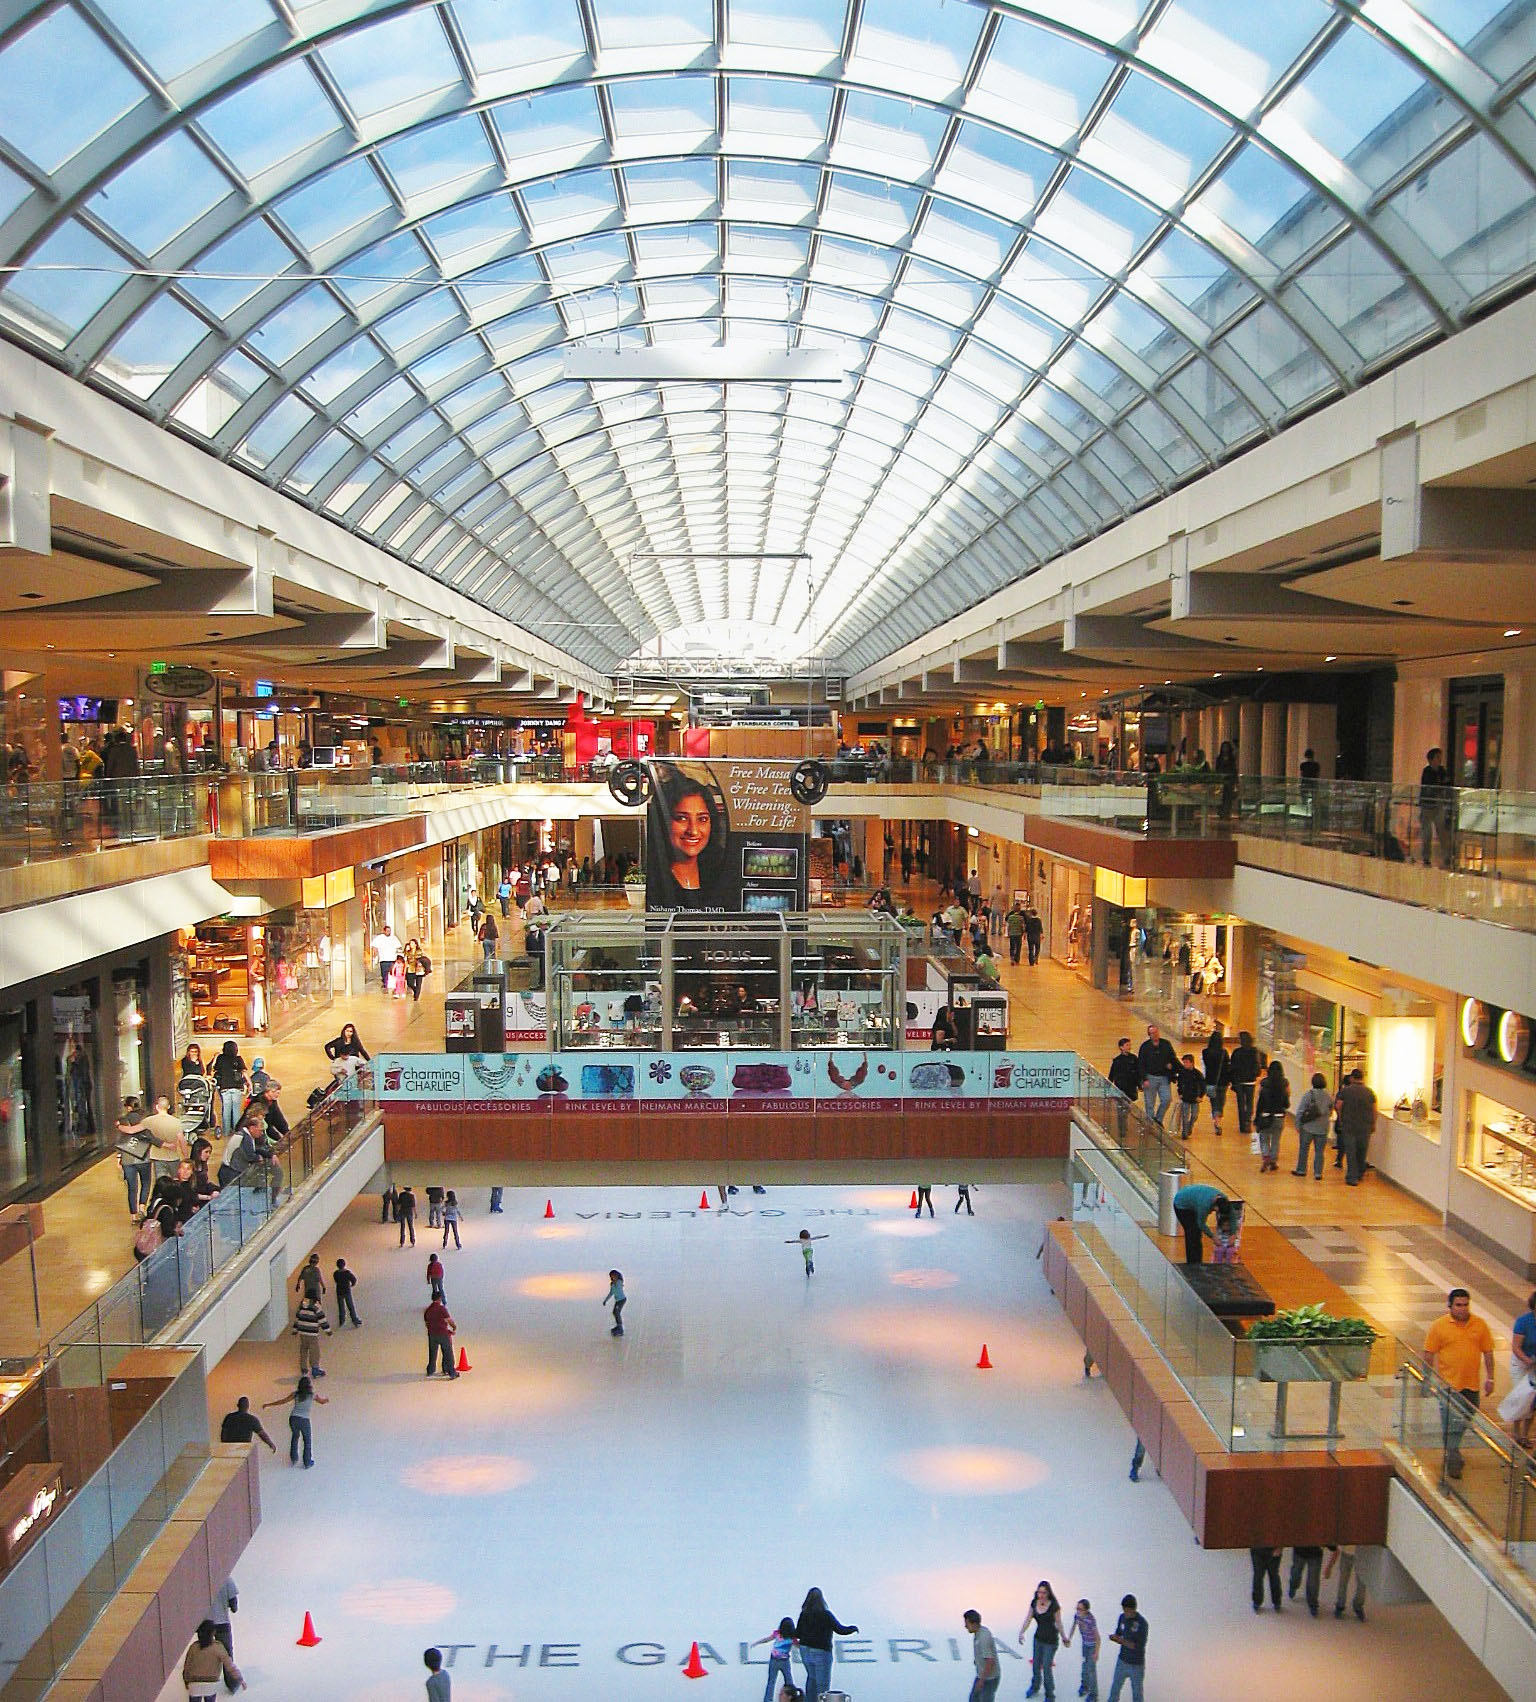 Find all of the stores, dining and entertainment options located at The Galleria.